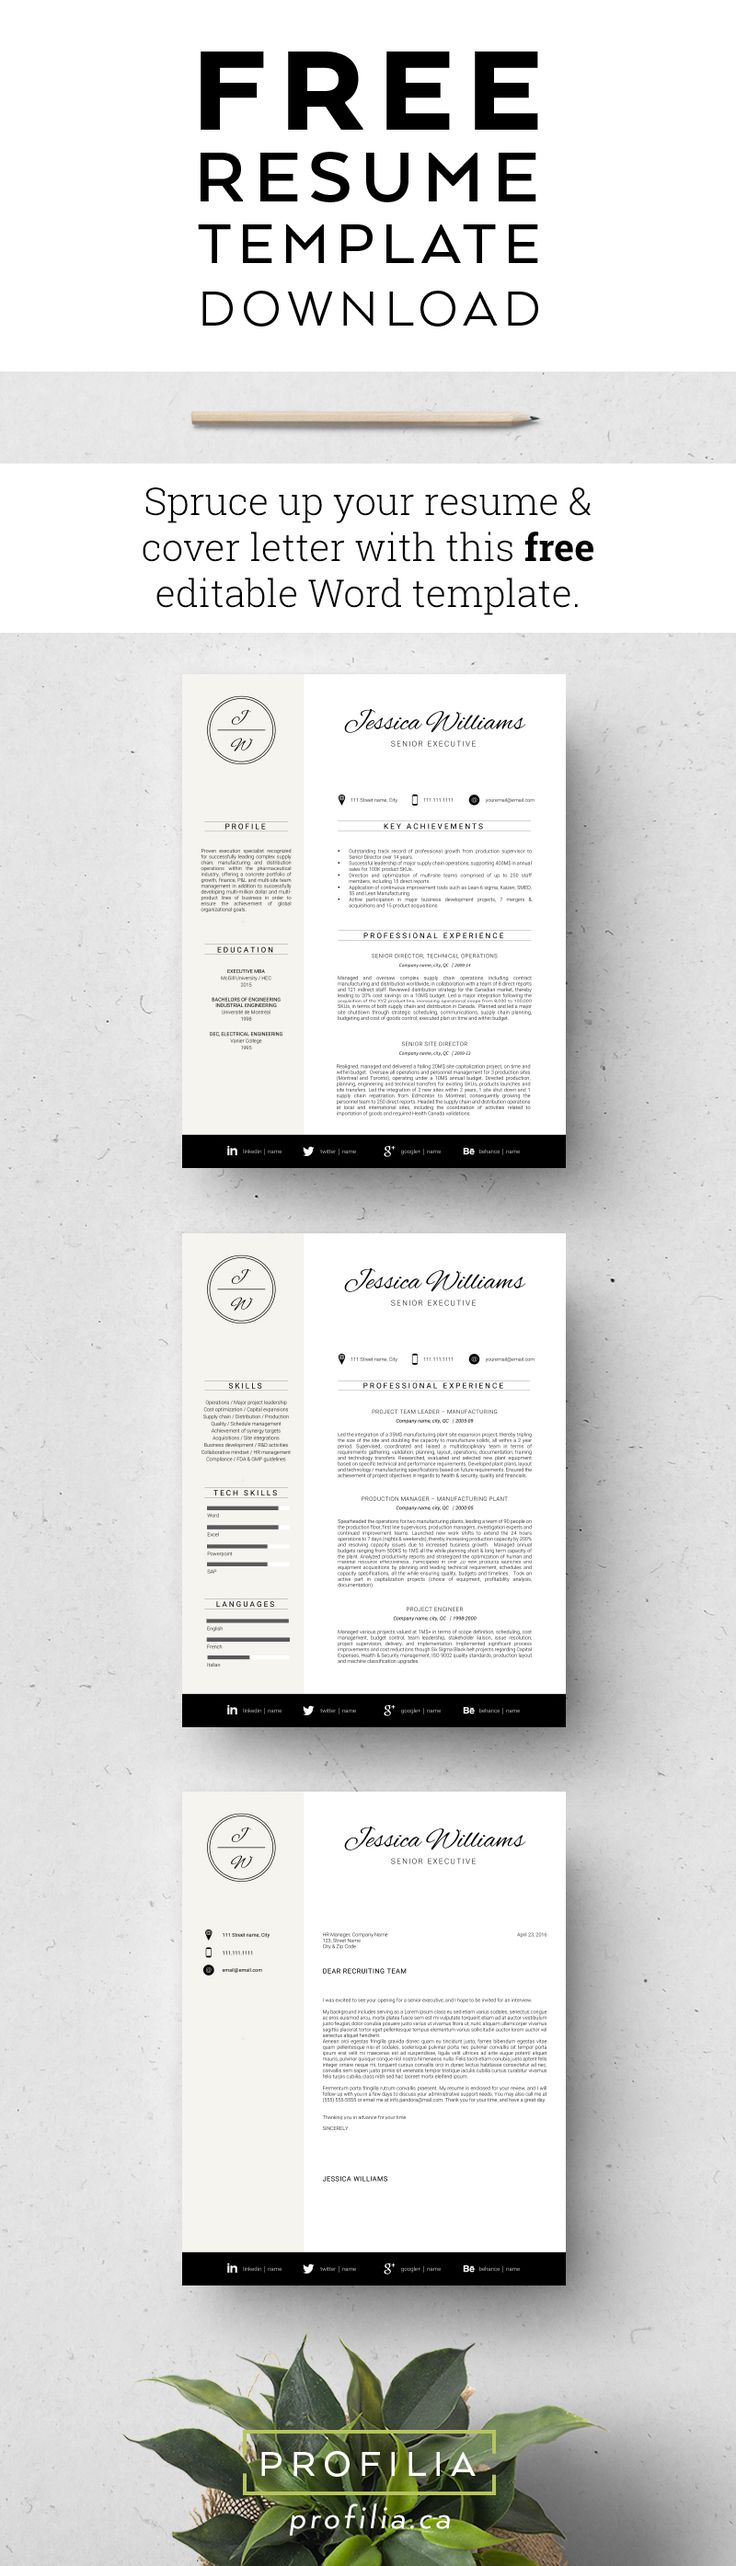 free resume template refresh your job search with this free resume cover - Sample Of Resume Cover Letter